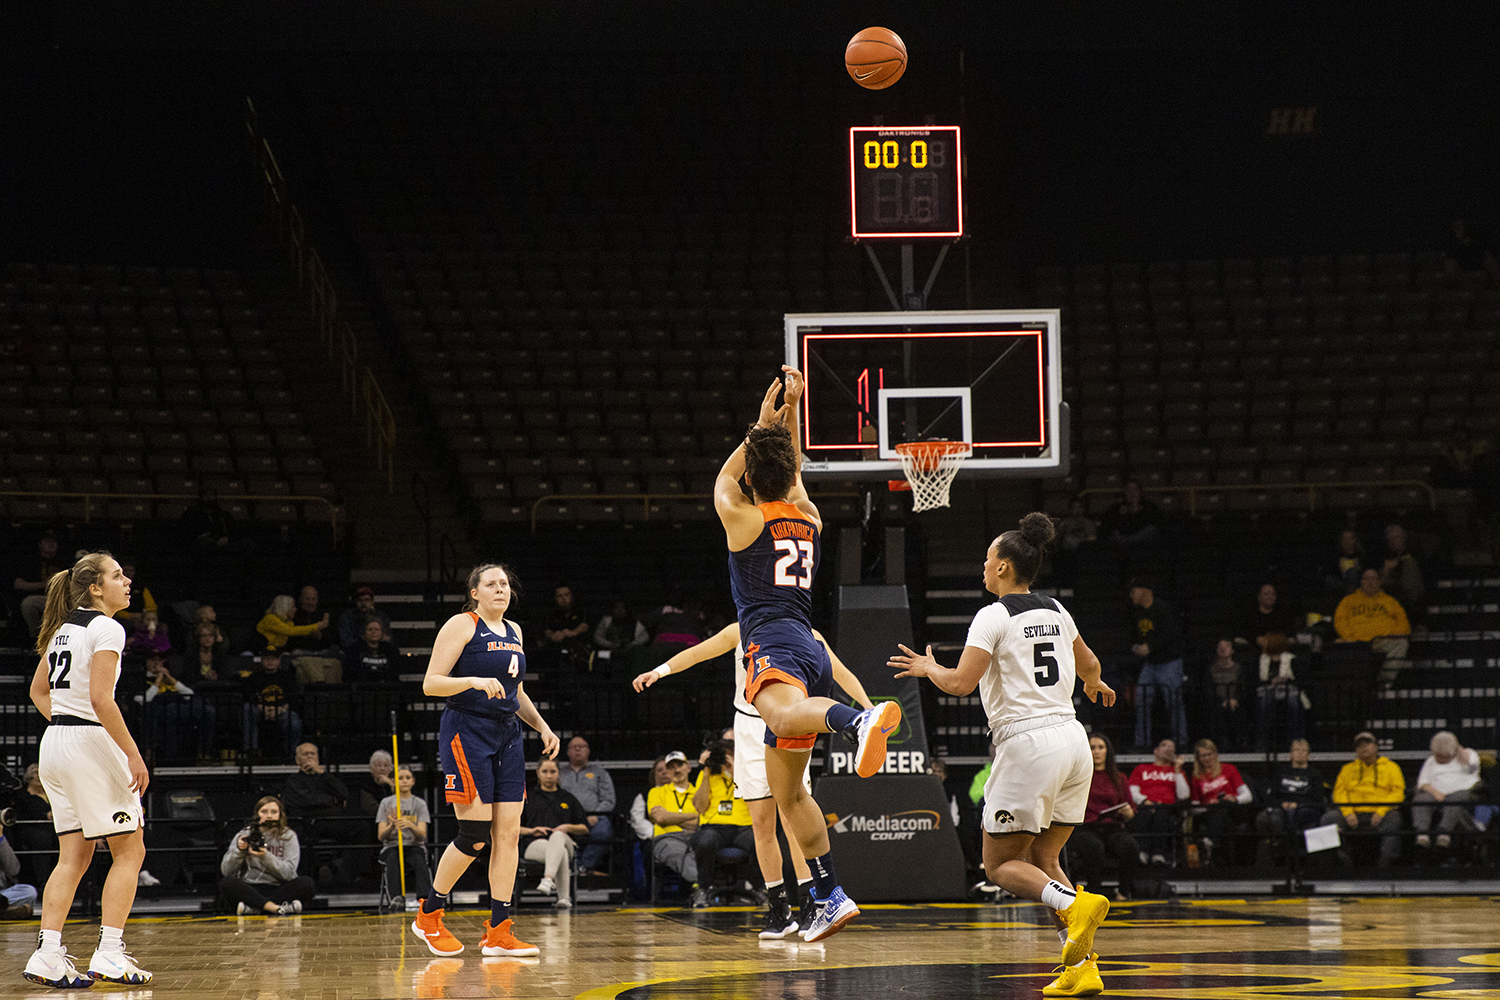 Illinois%27+guard+Jaelyne+Kirkpatrick+attempts+an+unsuccessful+half+court+shot+at+the+buzzer+during+the+Iowa%2FIllinois+women%27s+basketball+game+at+Carver-Hawkeye+Arena+on+Thursday%2C+February+14%2C+2019.+The+Hawkeyes+defeated+the+Fighting+Illini%2C+88-66.+